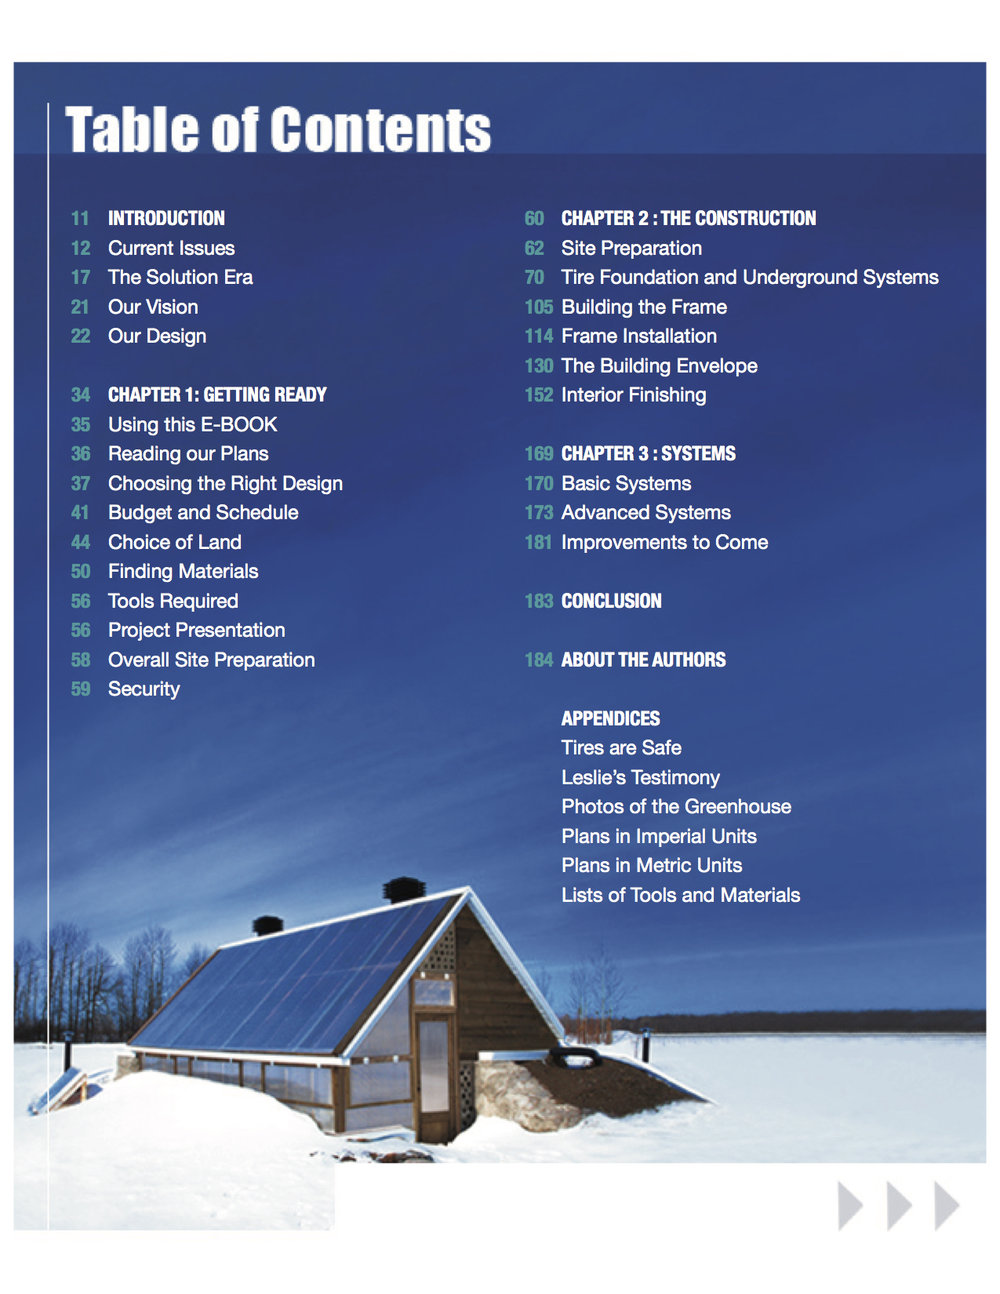 EBOOK - TABLE OF CONTENTS.jpg